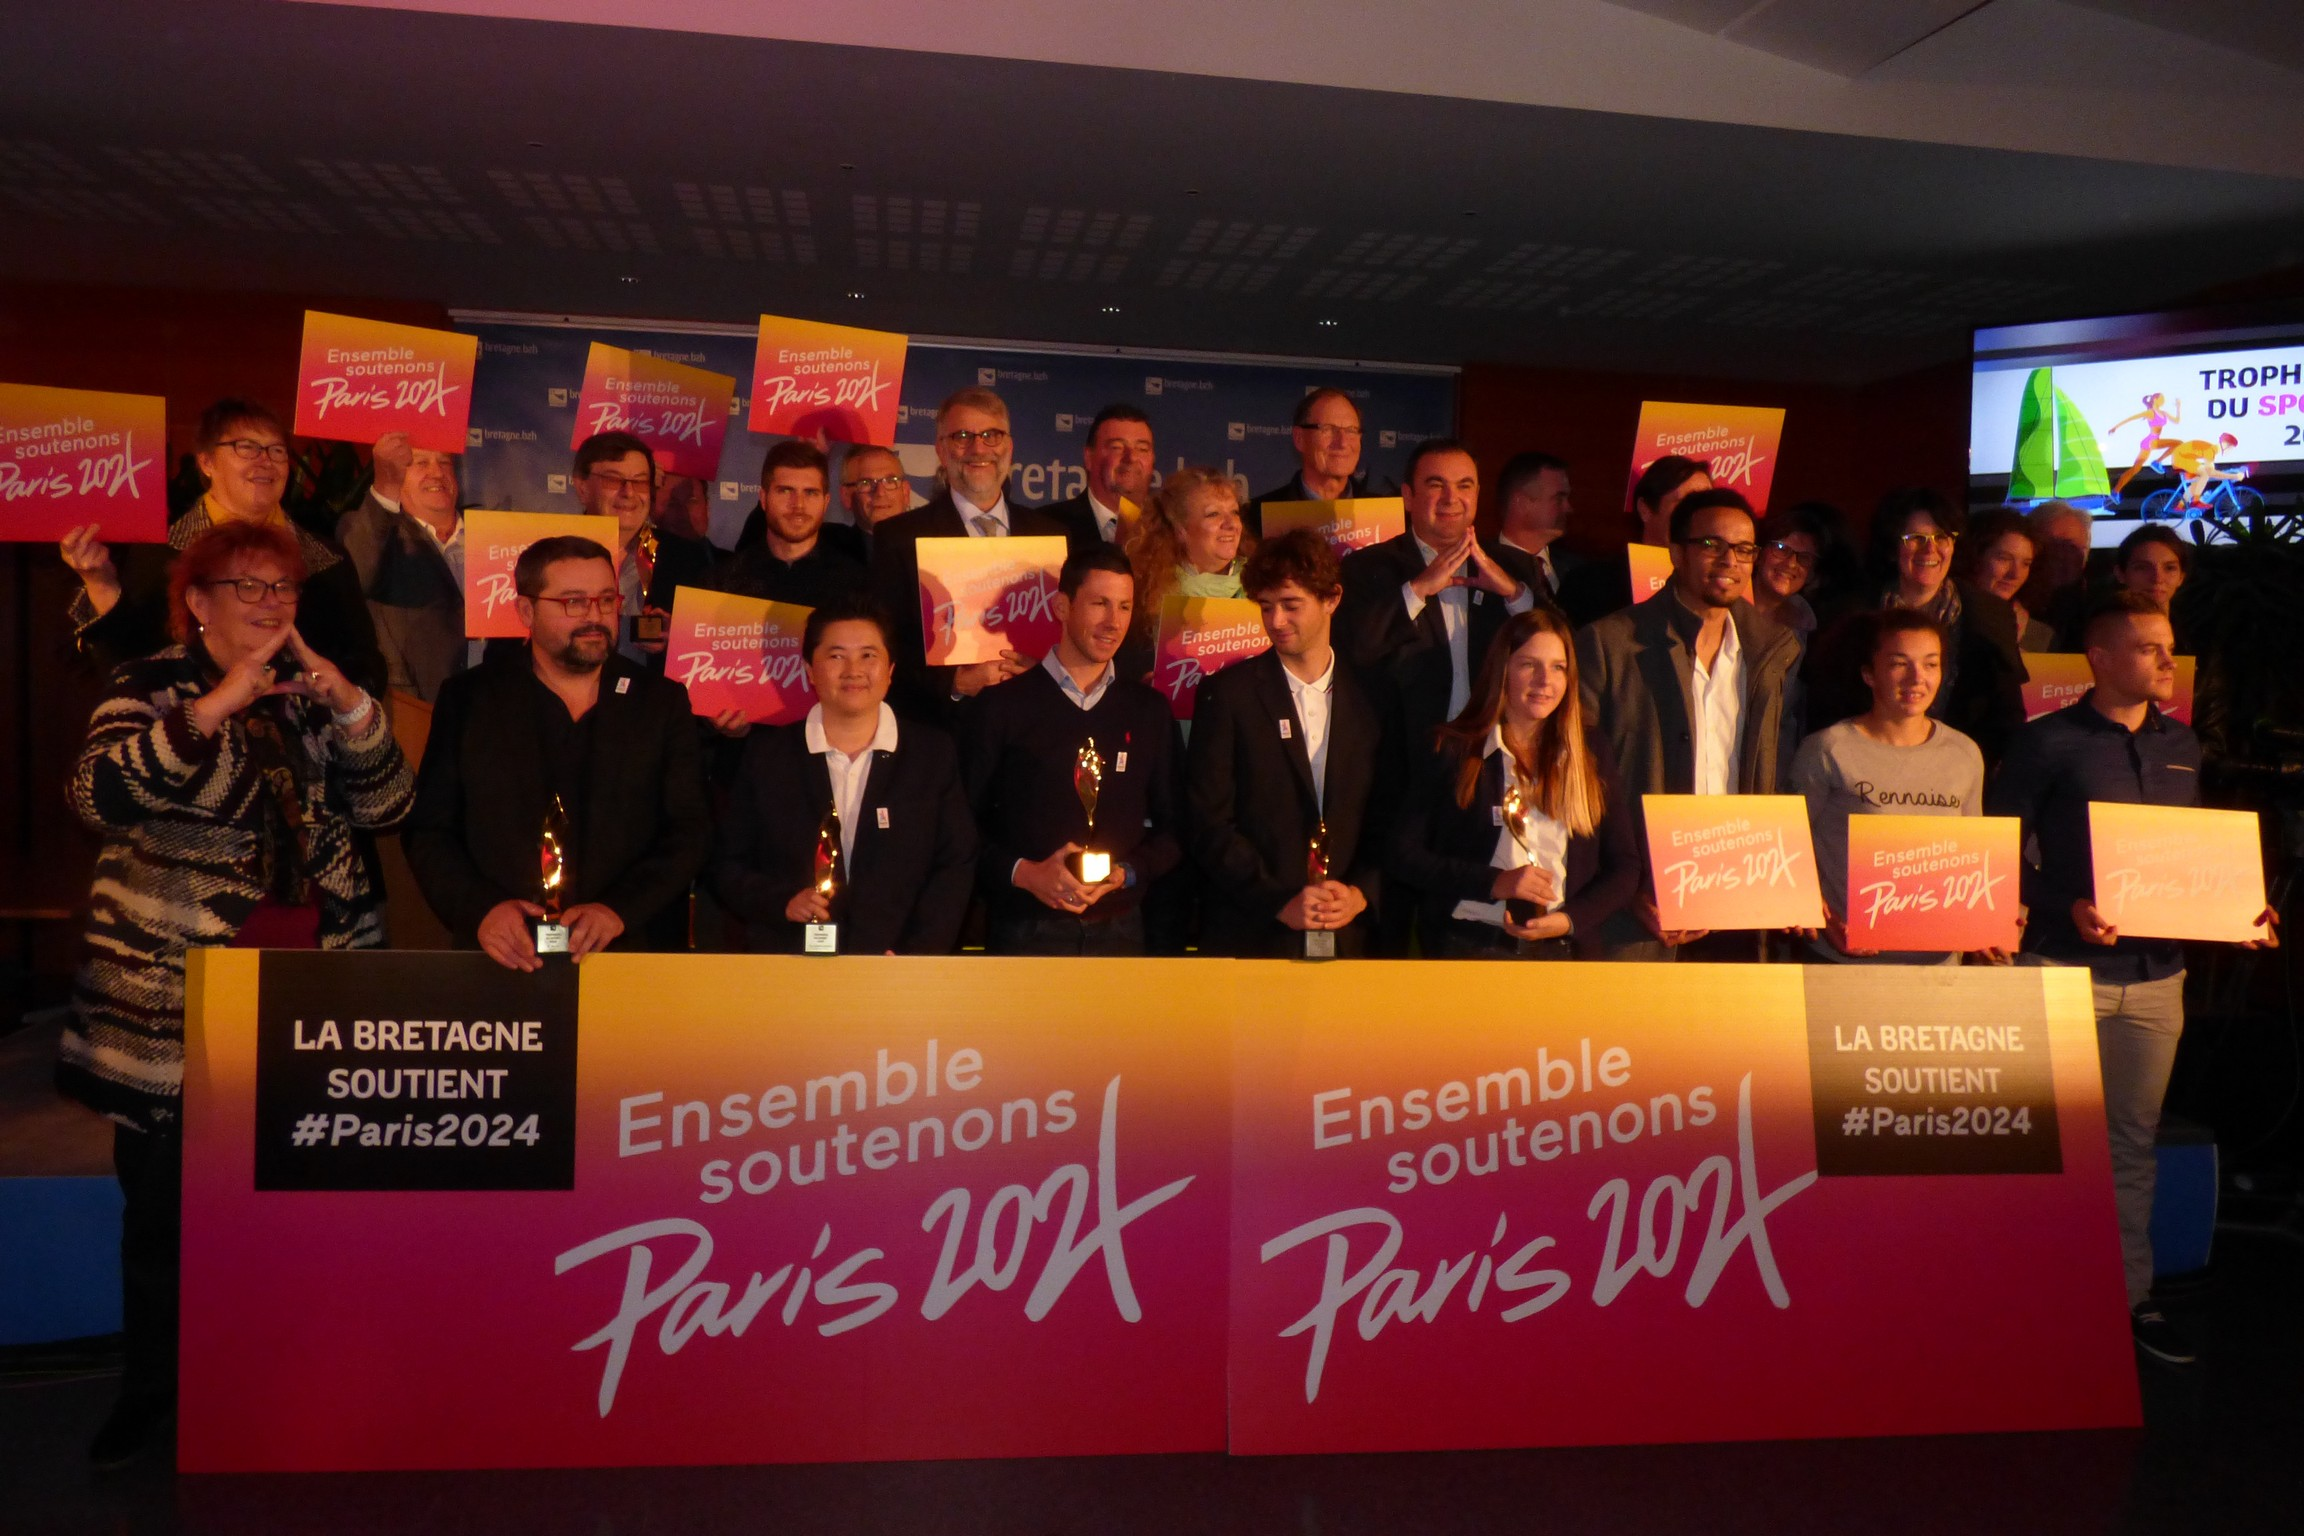 Ensemble Soutenons Paris 2024